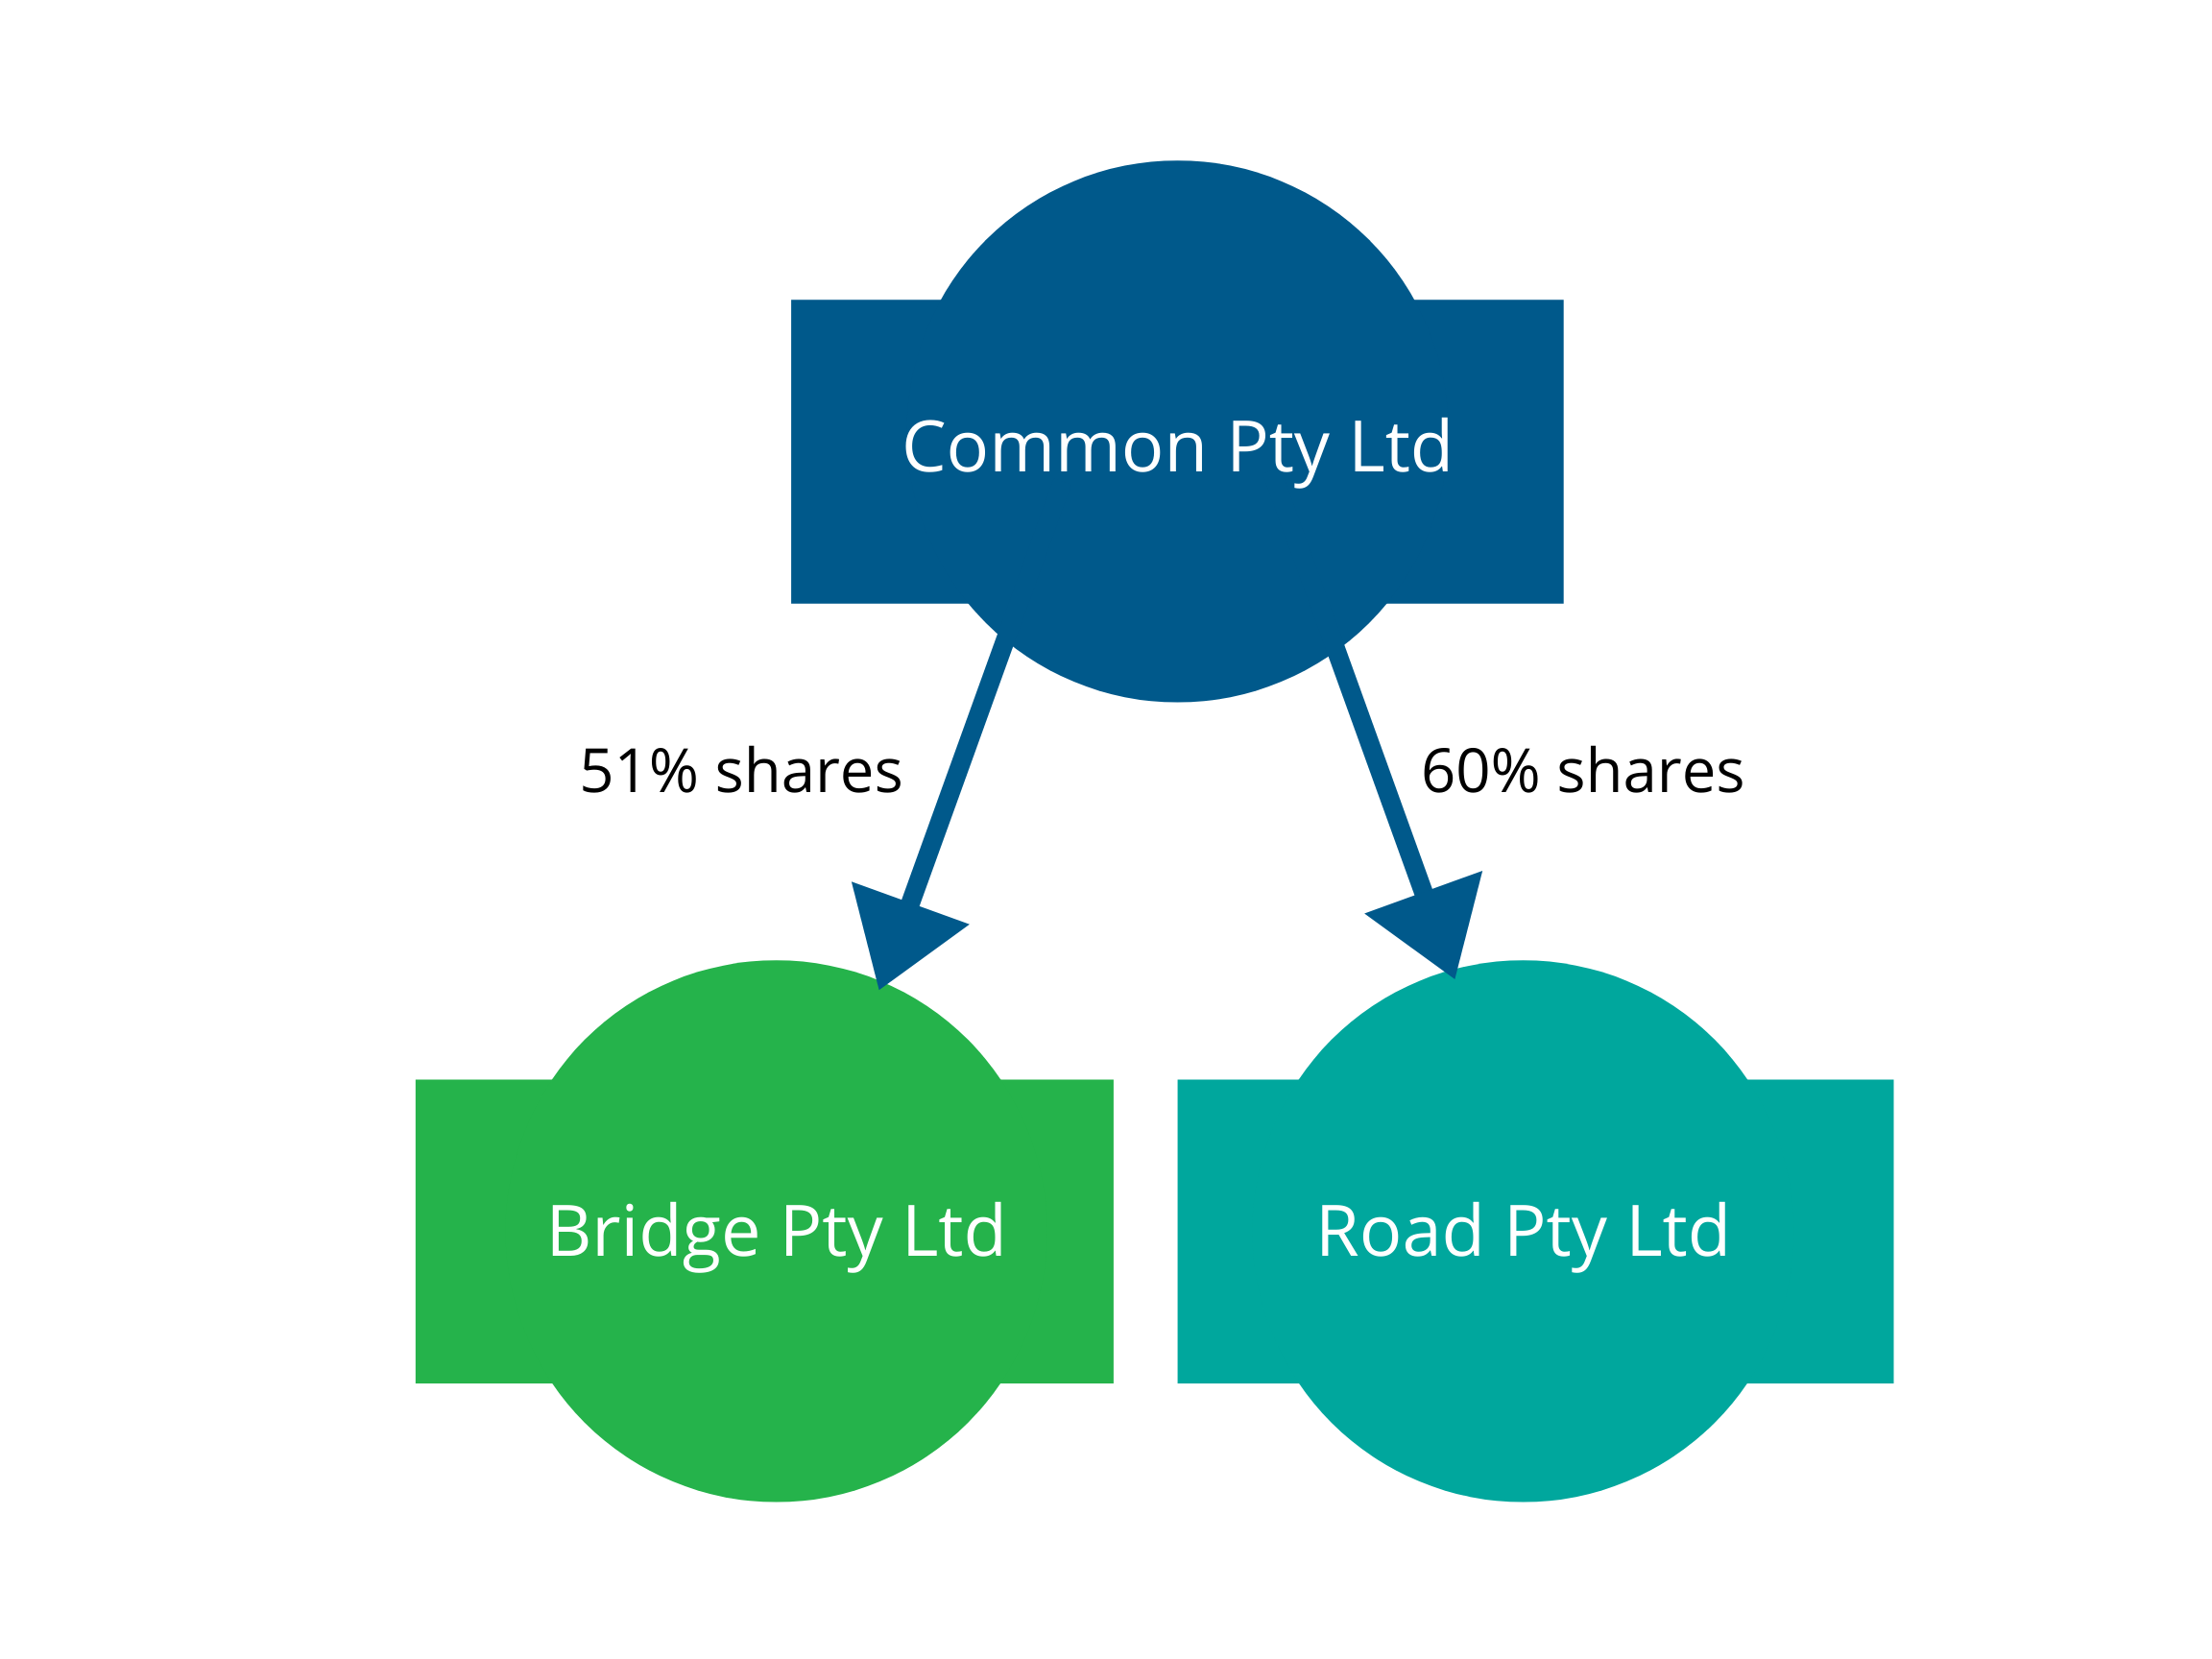 Illustration showing Common Pty Ltd has 51% of Bridge Pty Ltd shares and 60% of the shares in Road Pty Ltd